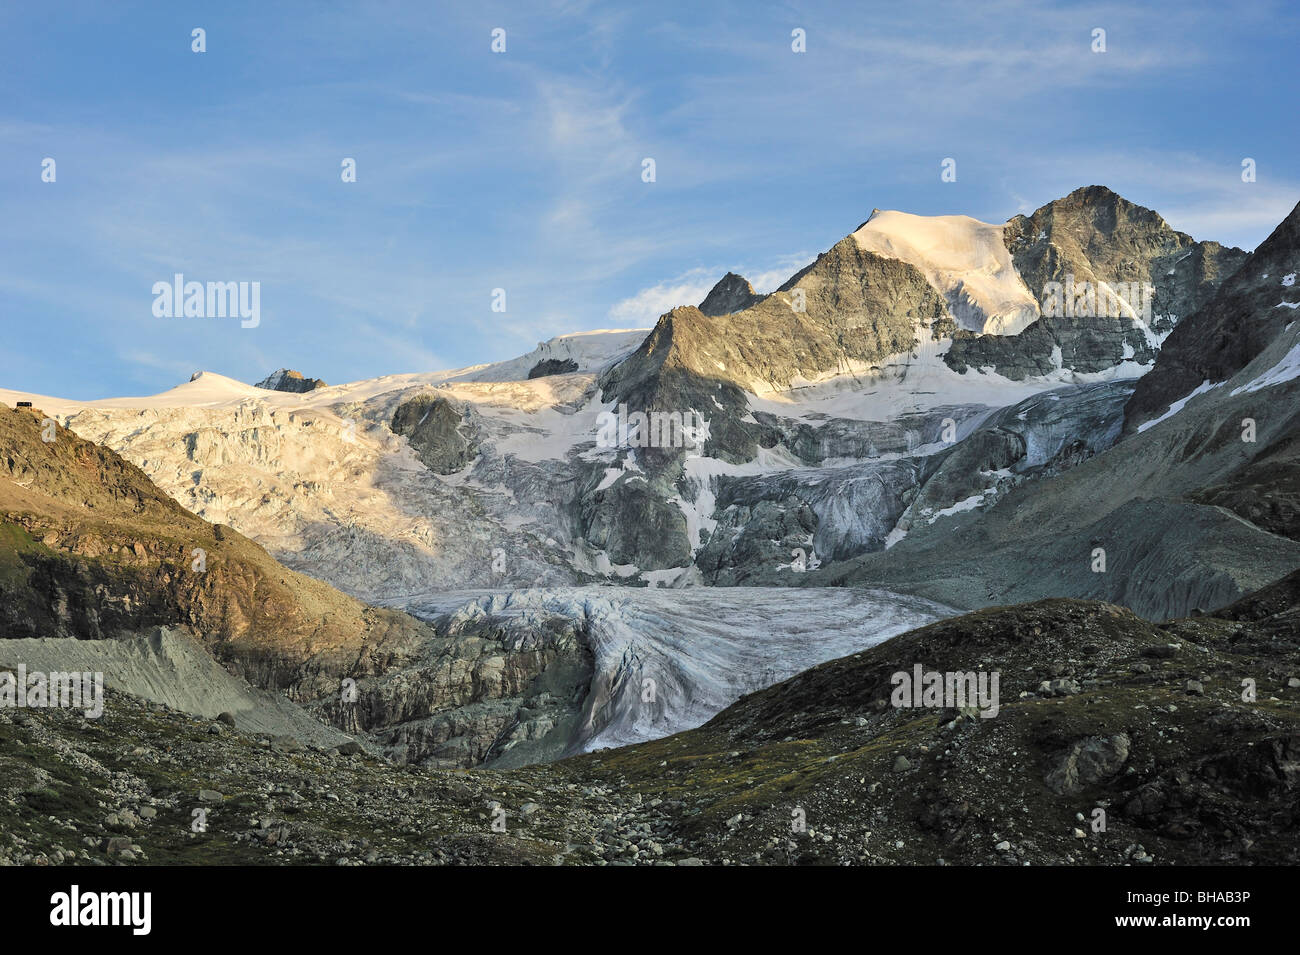 The Moiry Glacier in evening light at sunset in the Pennine Alps / Walliser Alpen, Valais / Wallis, Switzerland Stock Photo